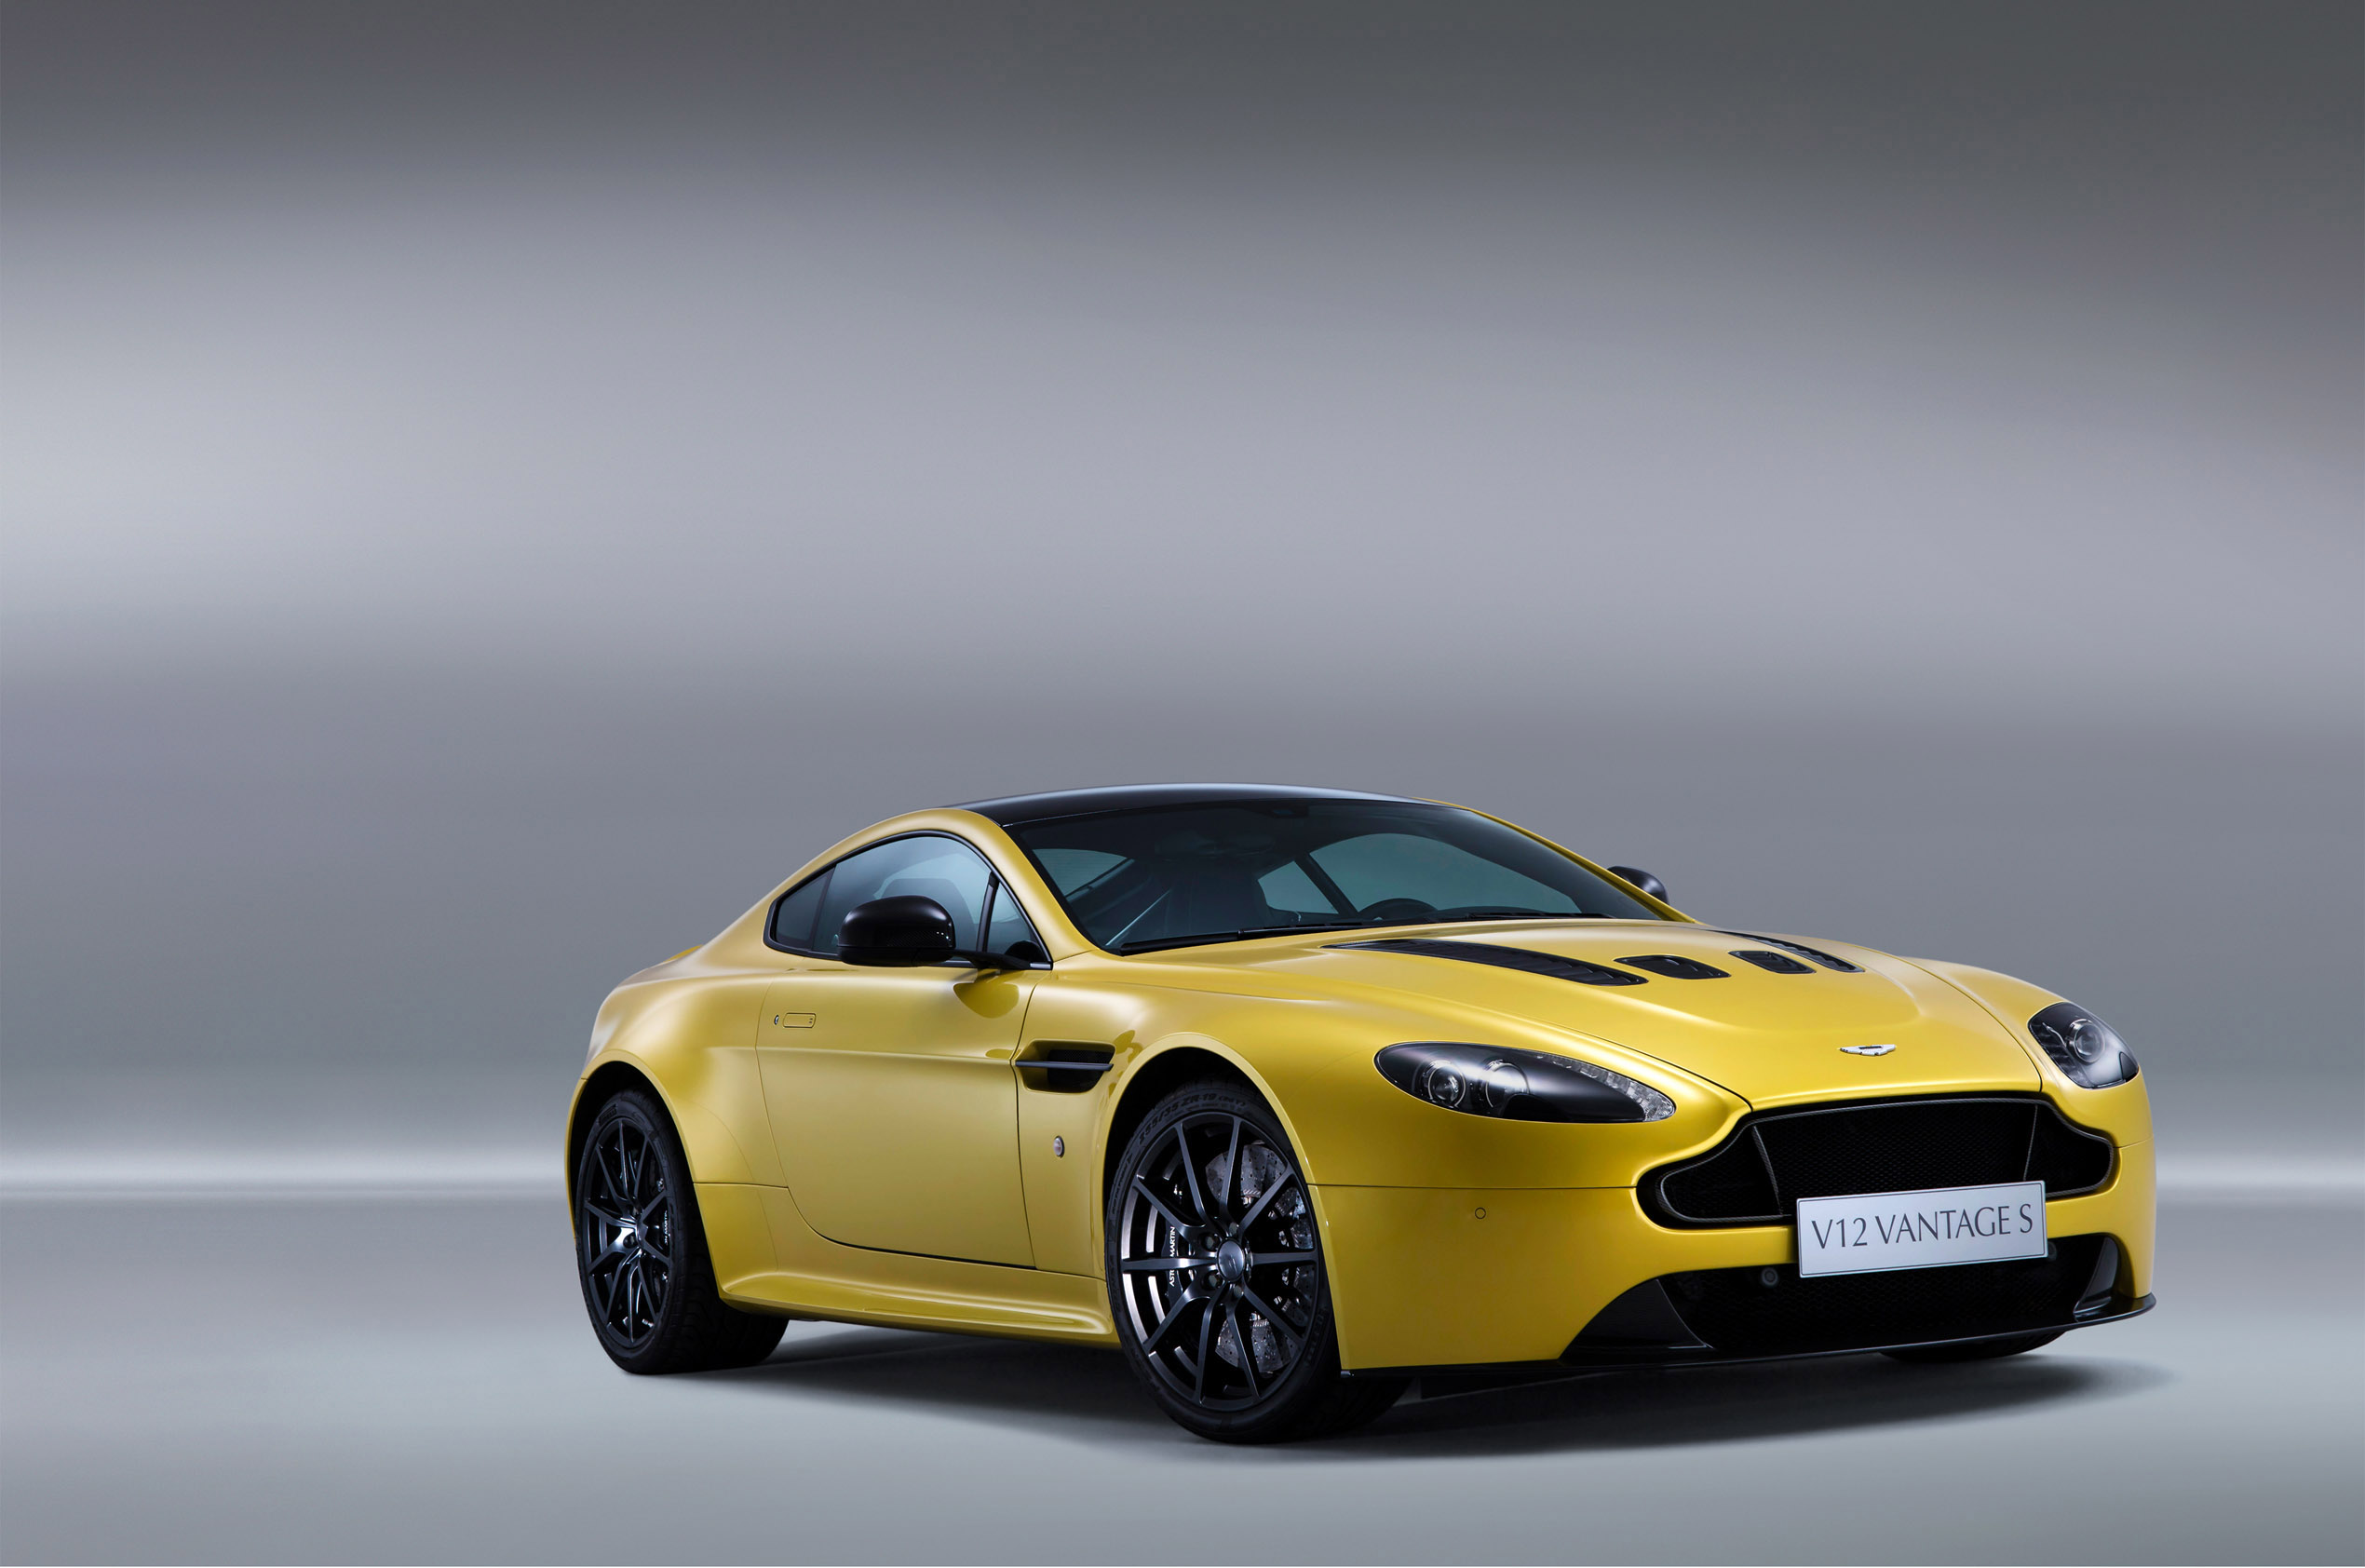 2014 aston martin v12 vantage s details. Black Bedroom Furniture Sets. Home Design Ideas